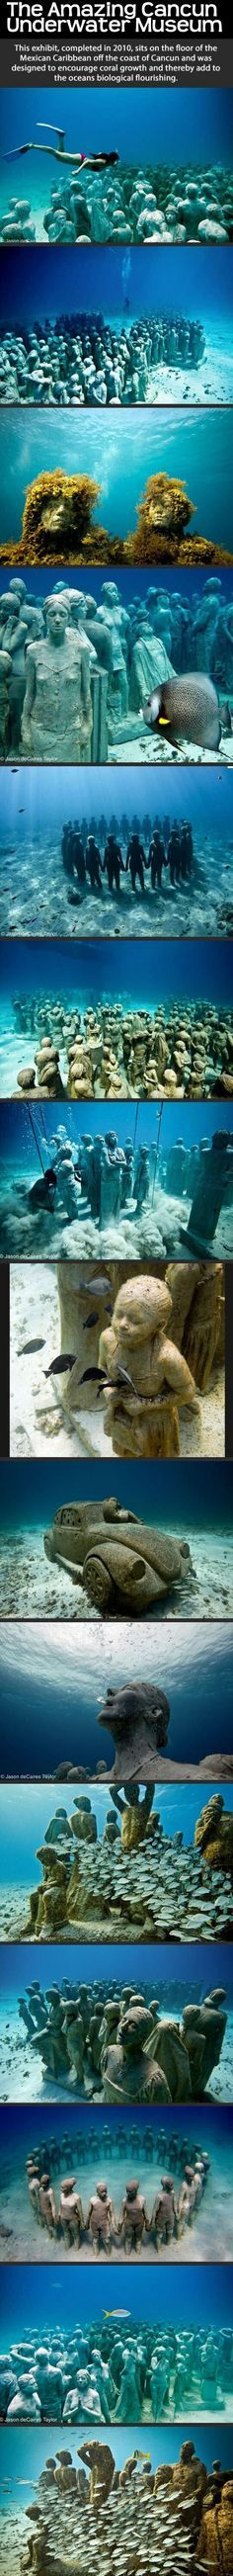 The Amazing Cancun Underwater Museum photography beach beautiful ocean travel vacation museum cancun destination destinations travel destinations